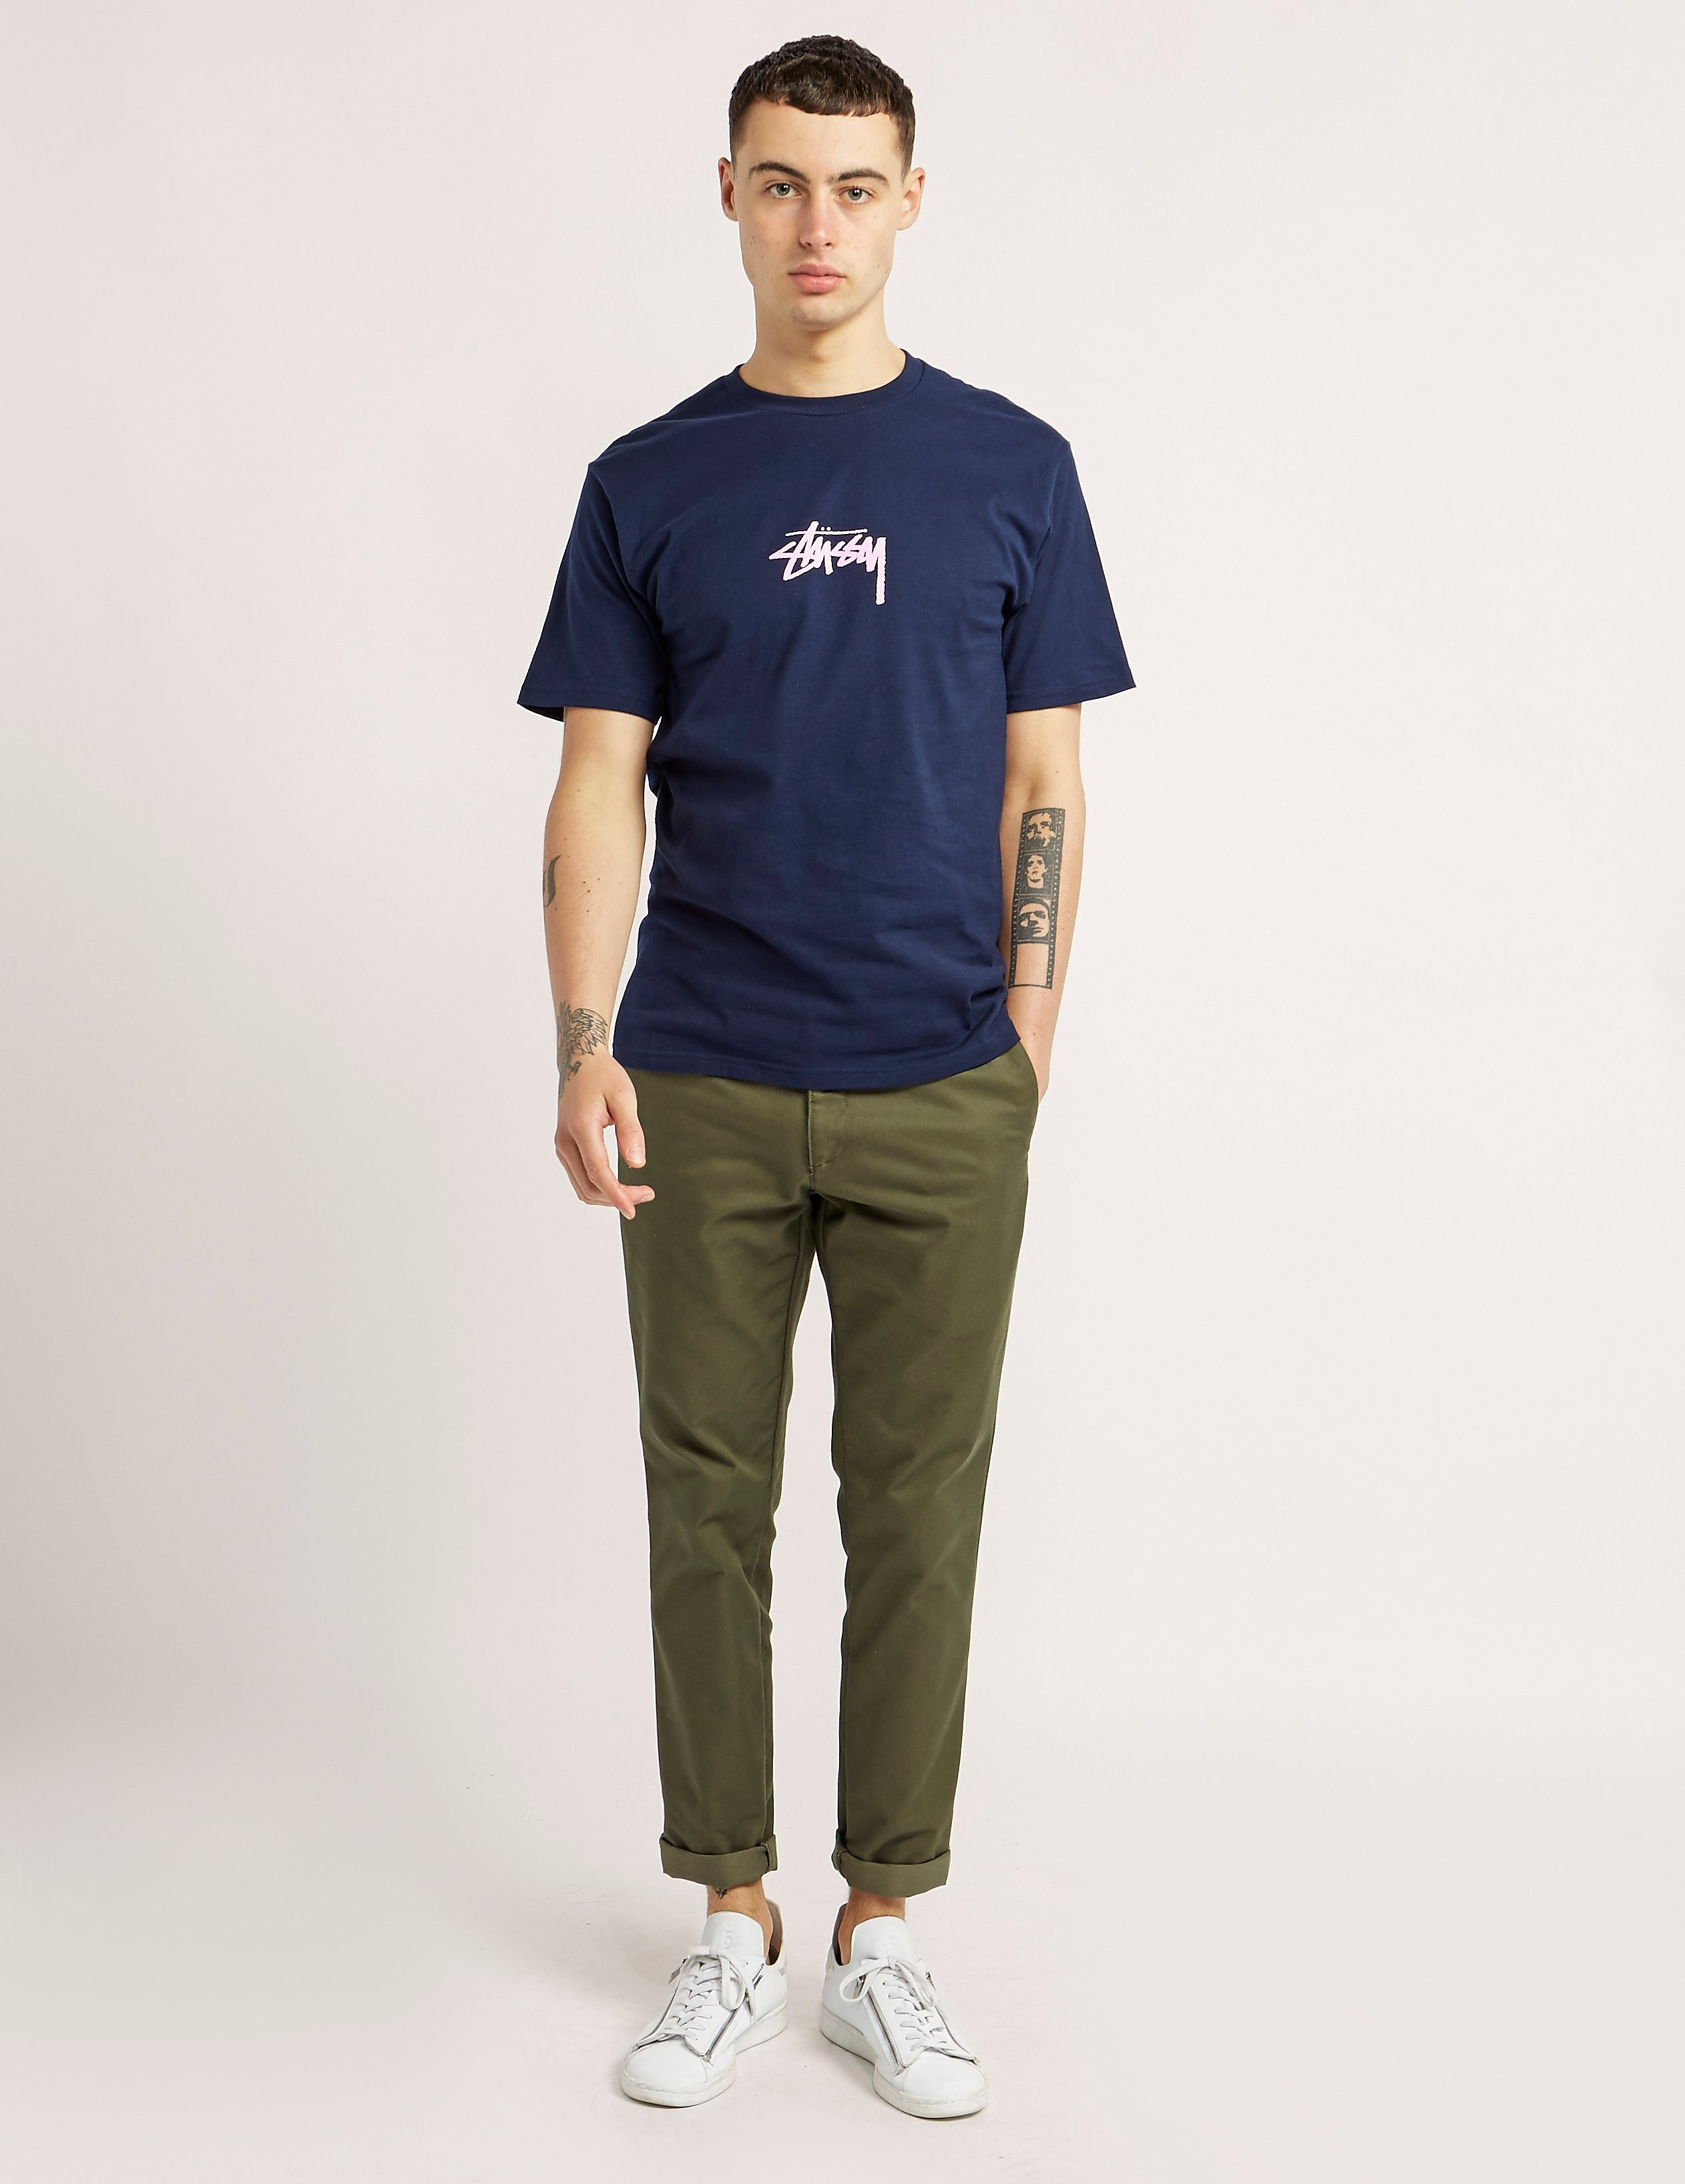 Stussy Stock Short Sleeve T-Shirt